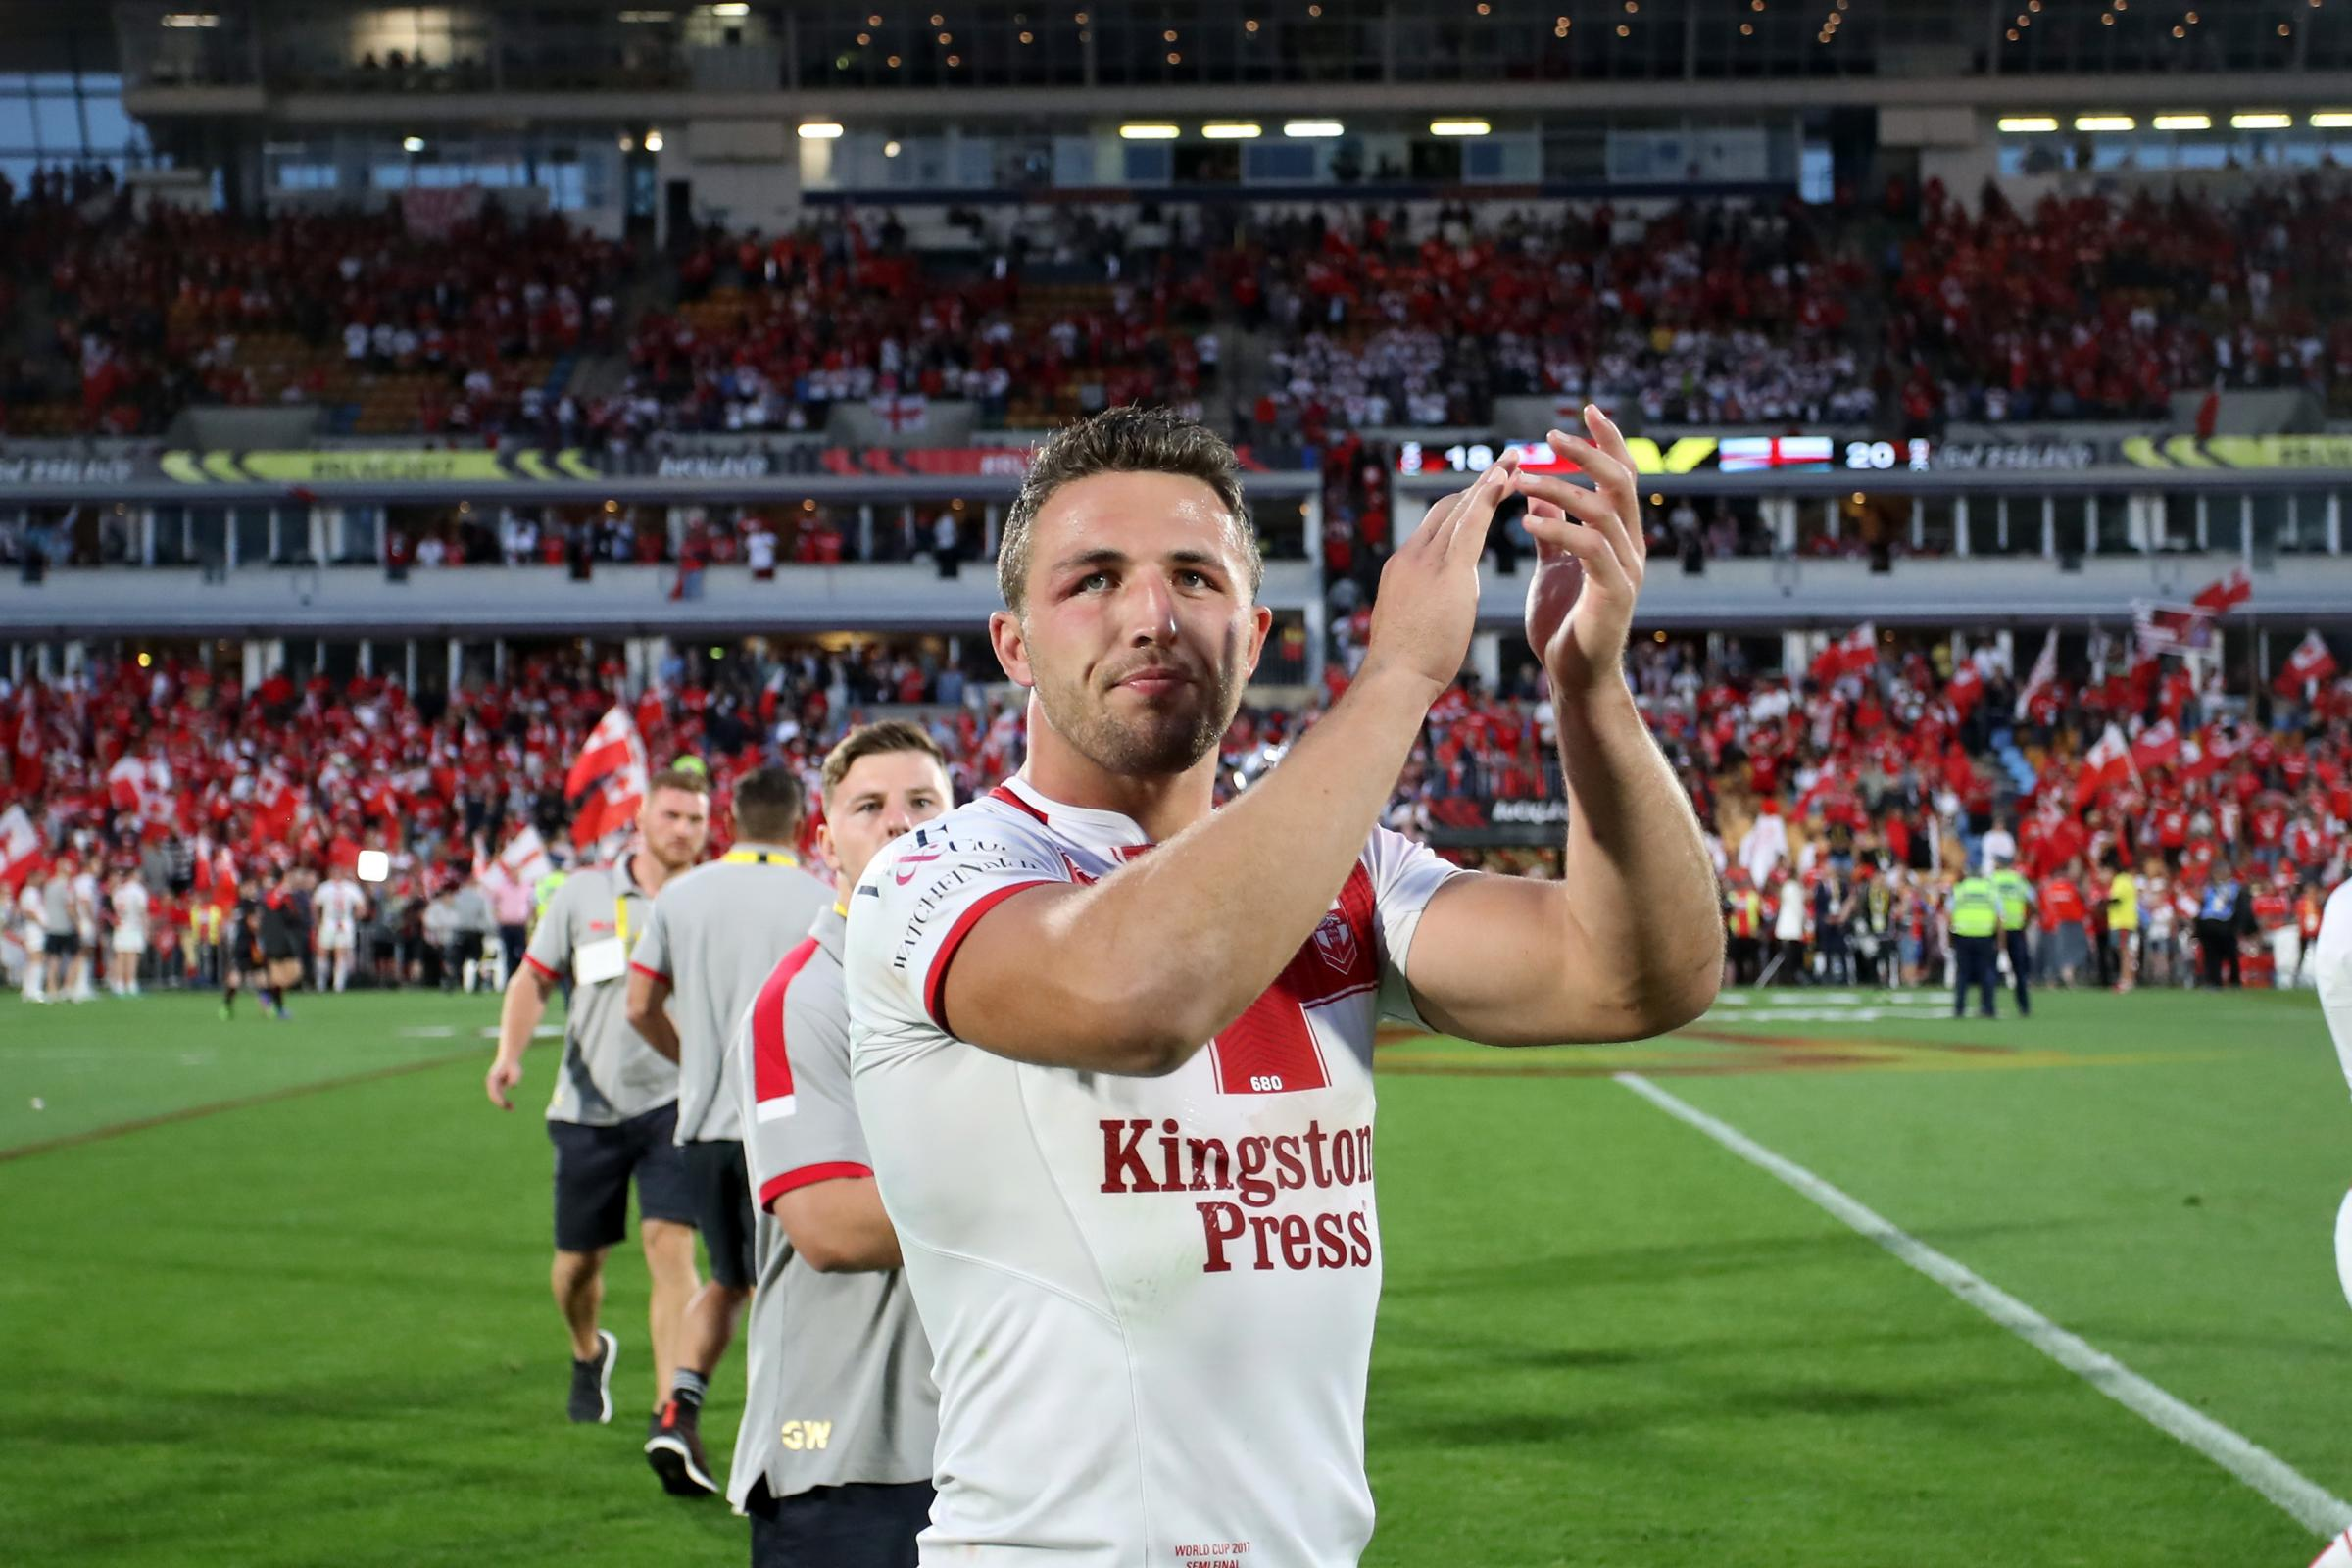 Sam Burgess has been cleared in a sexting scandal